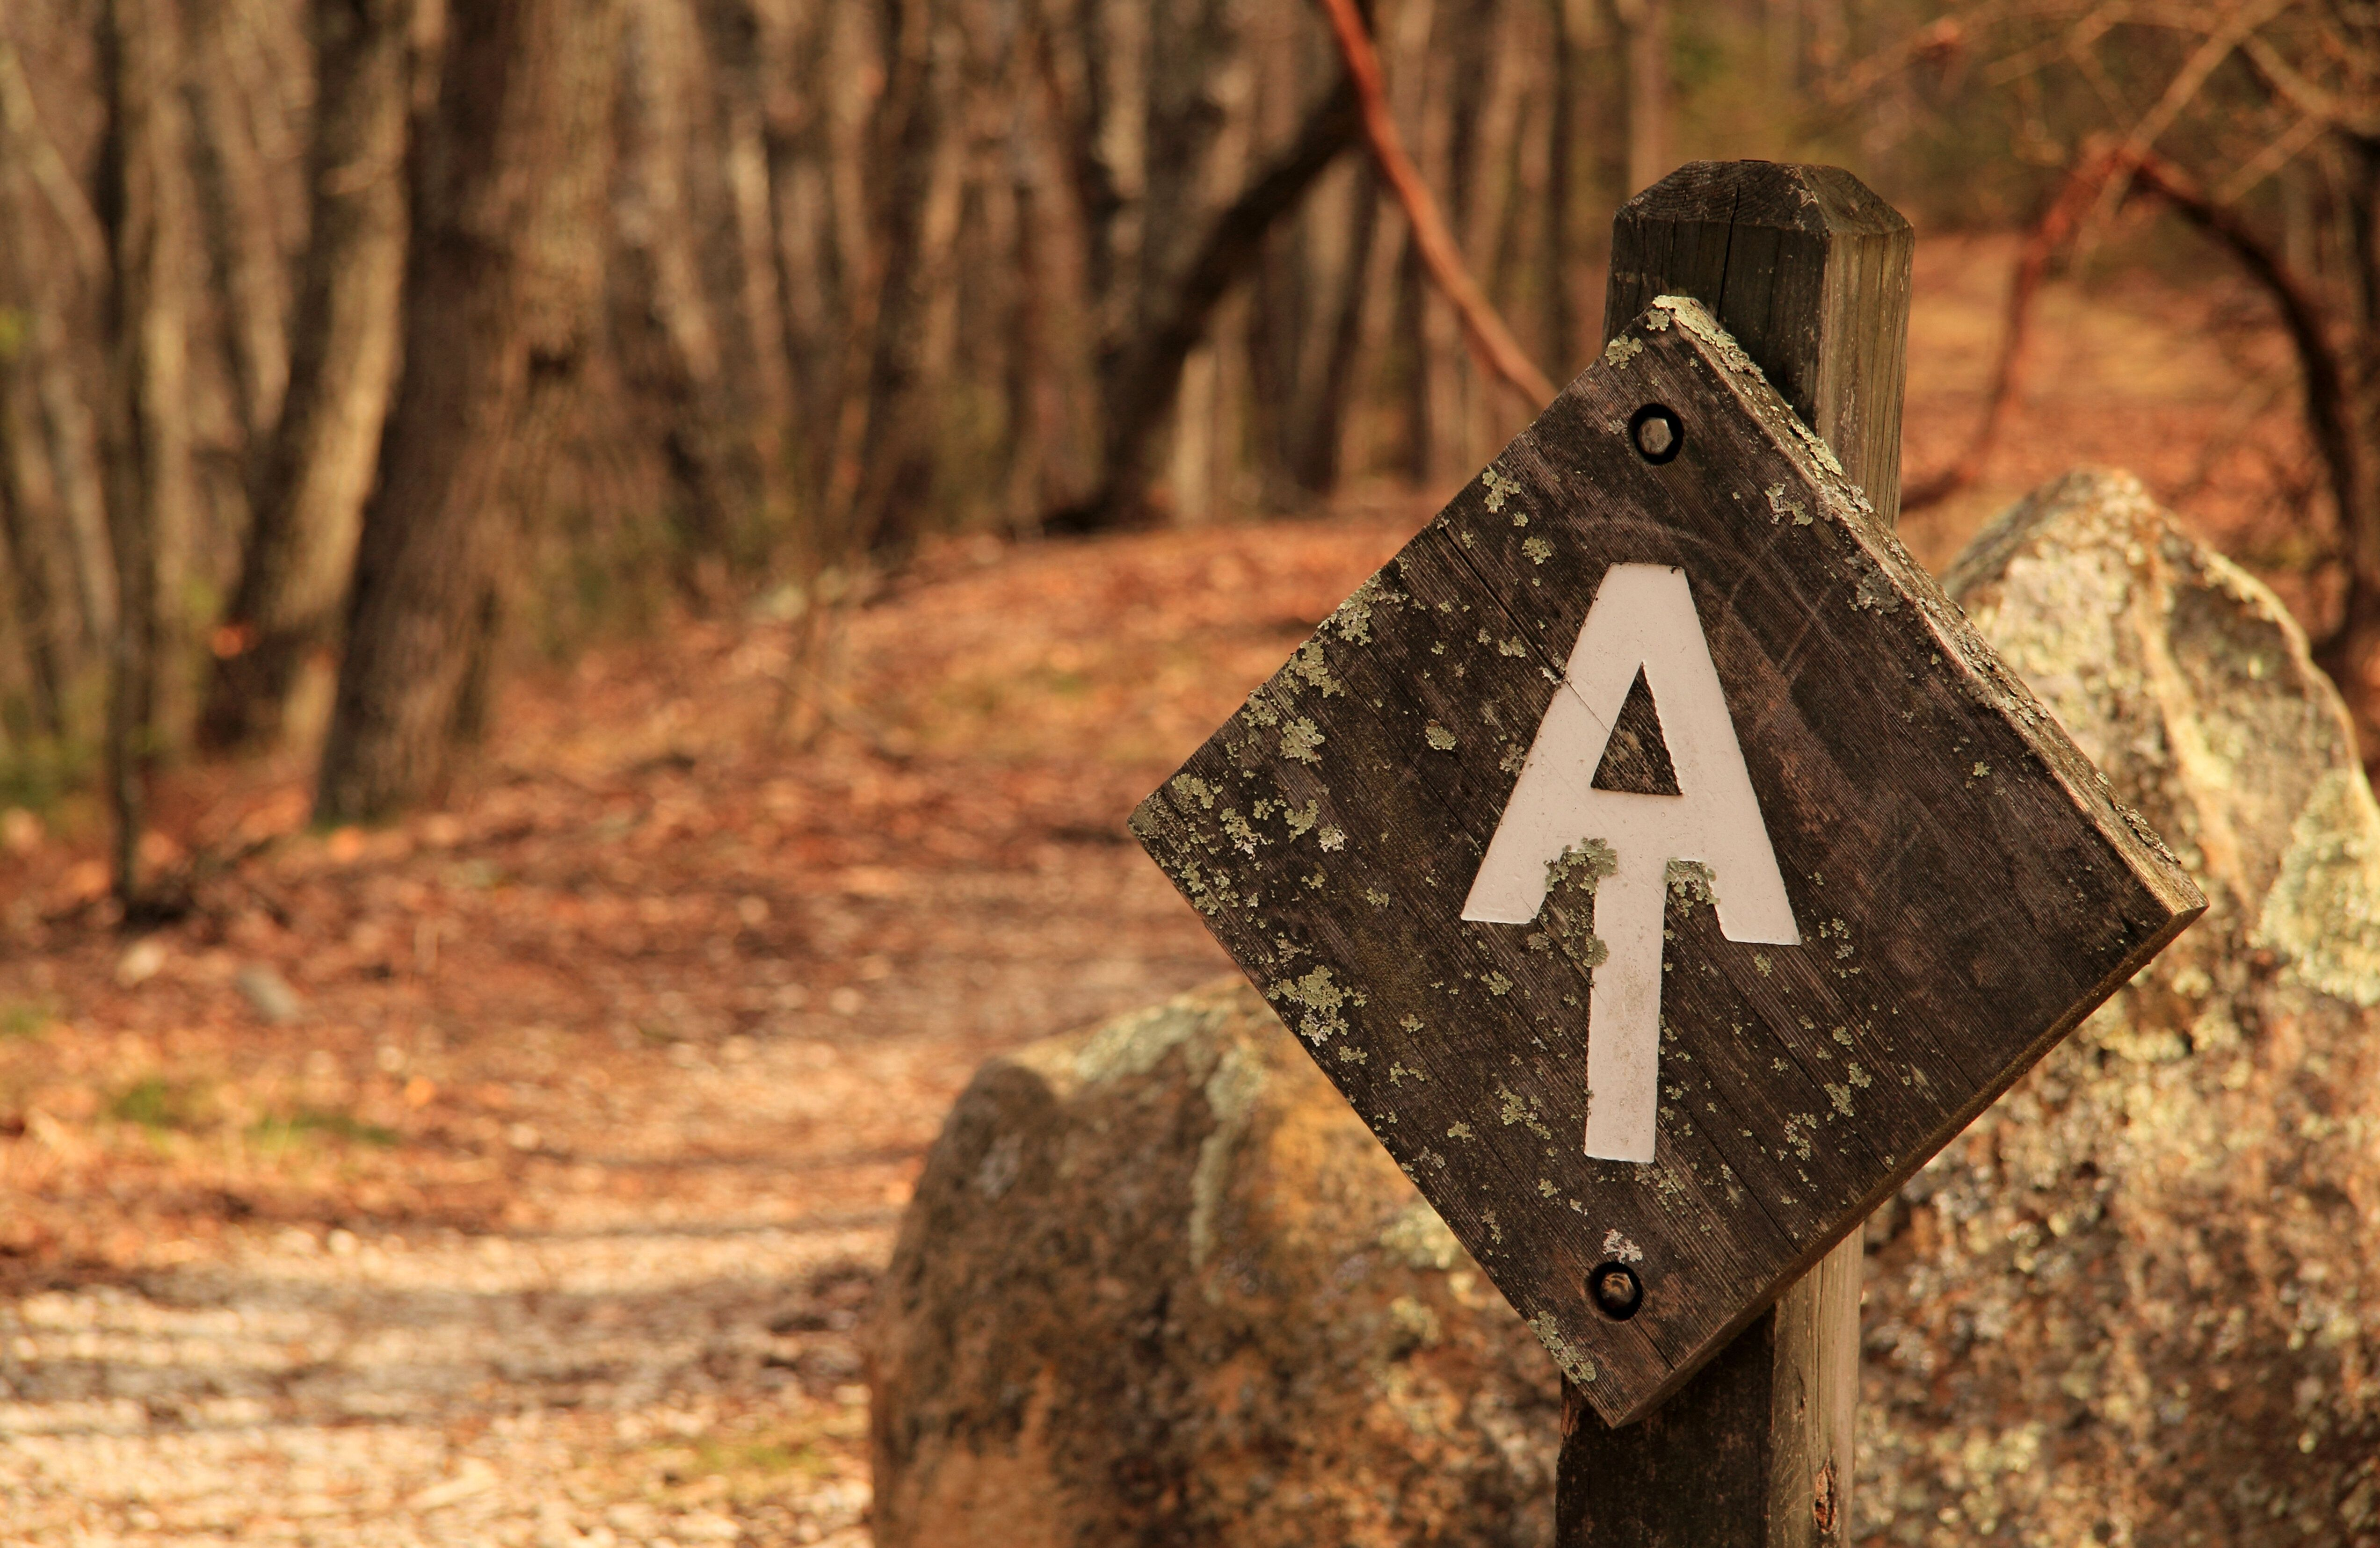 Appalachian Trail along the Blue Ridge Parkway in the State of Virginia